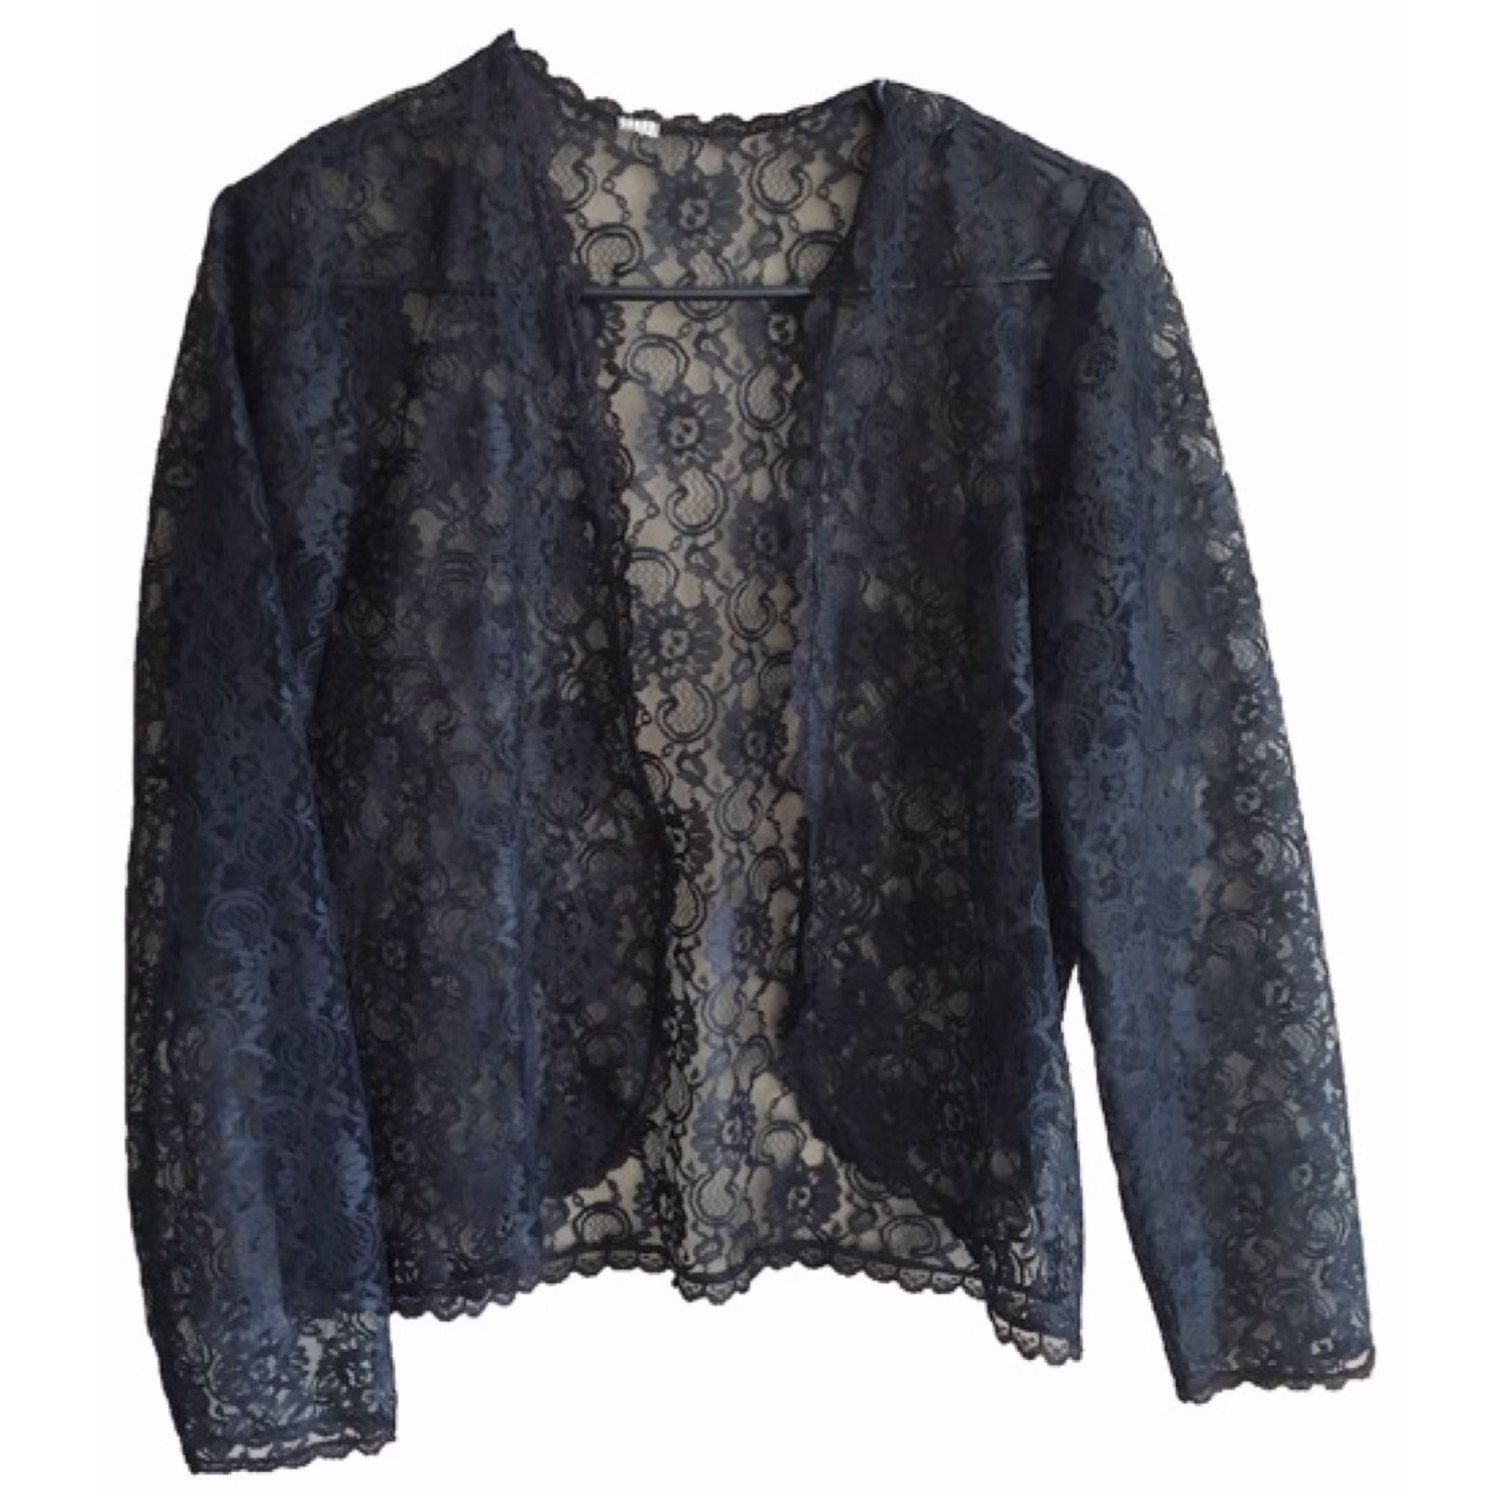 Black Lace Cardigan Cover up vintage long sleeve scalloped lace ...